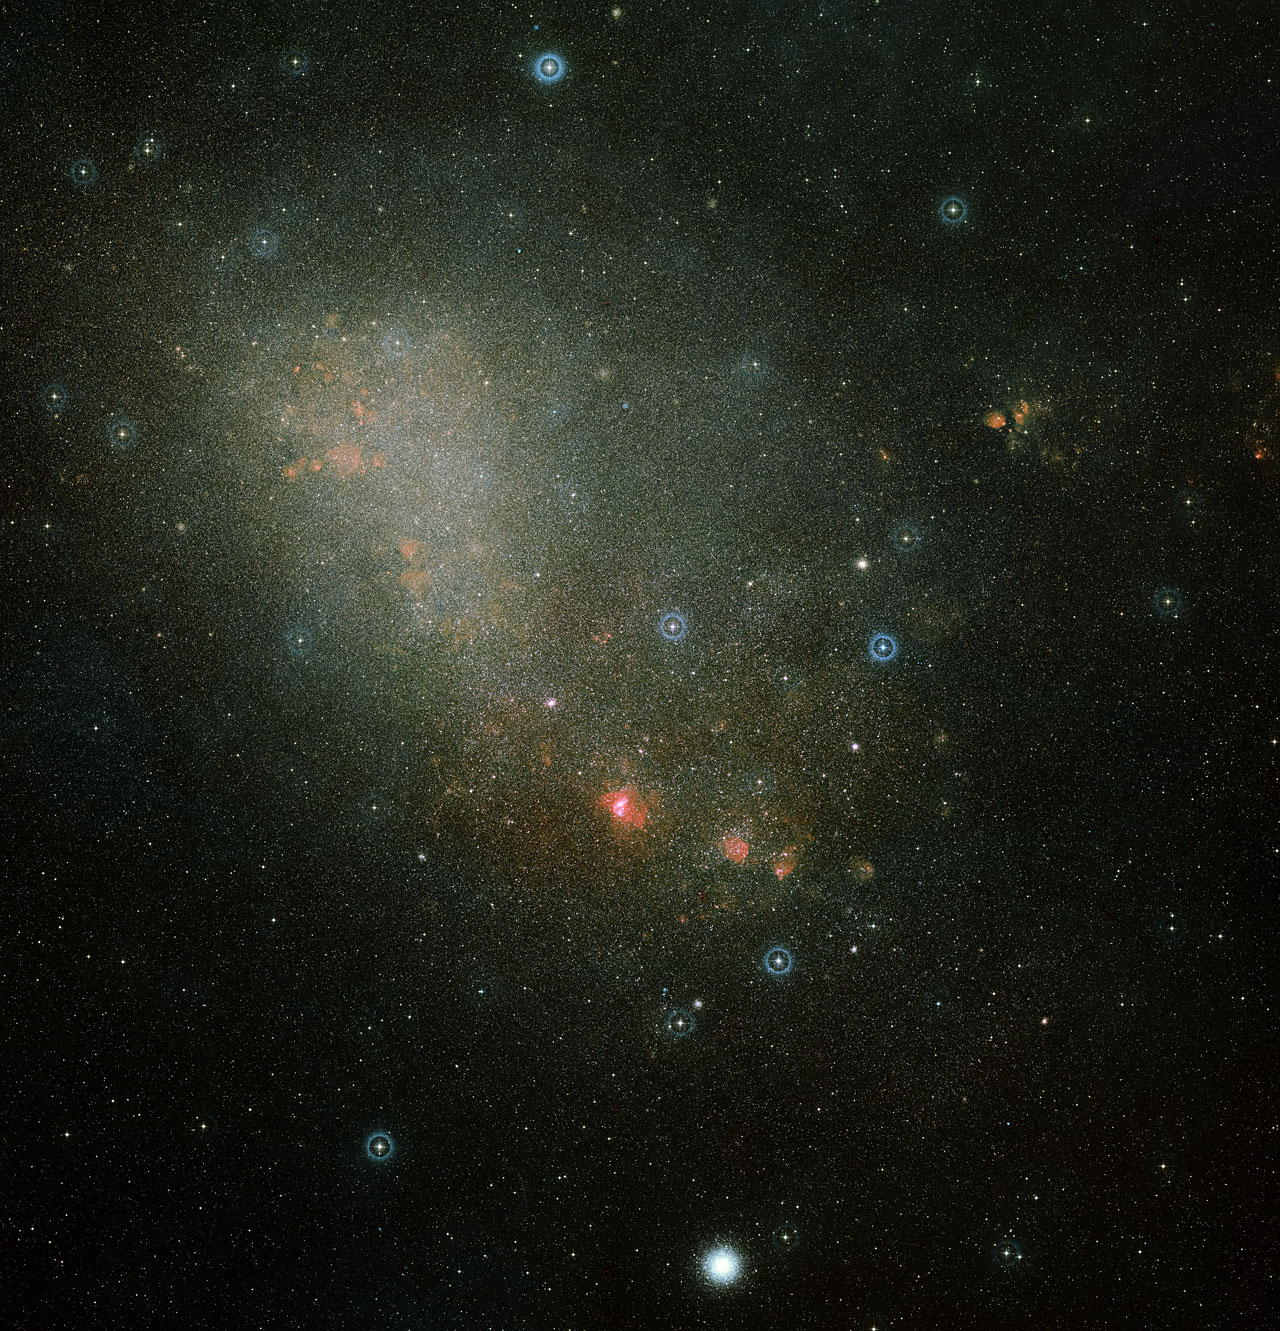 u-m-astronomers-confirm-collision-between-two-milky-way-satellite-galaxies-SMC.jpg